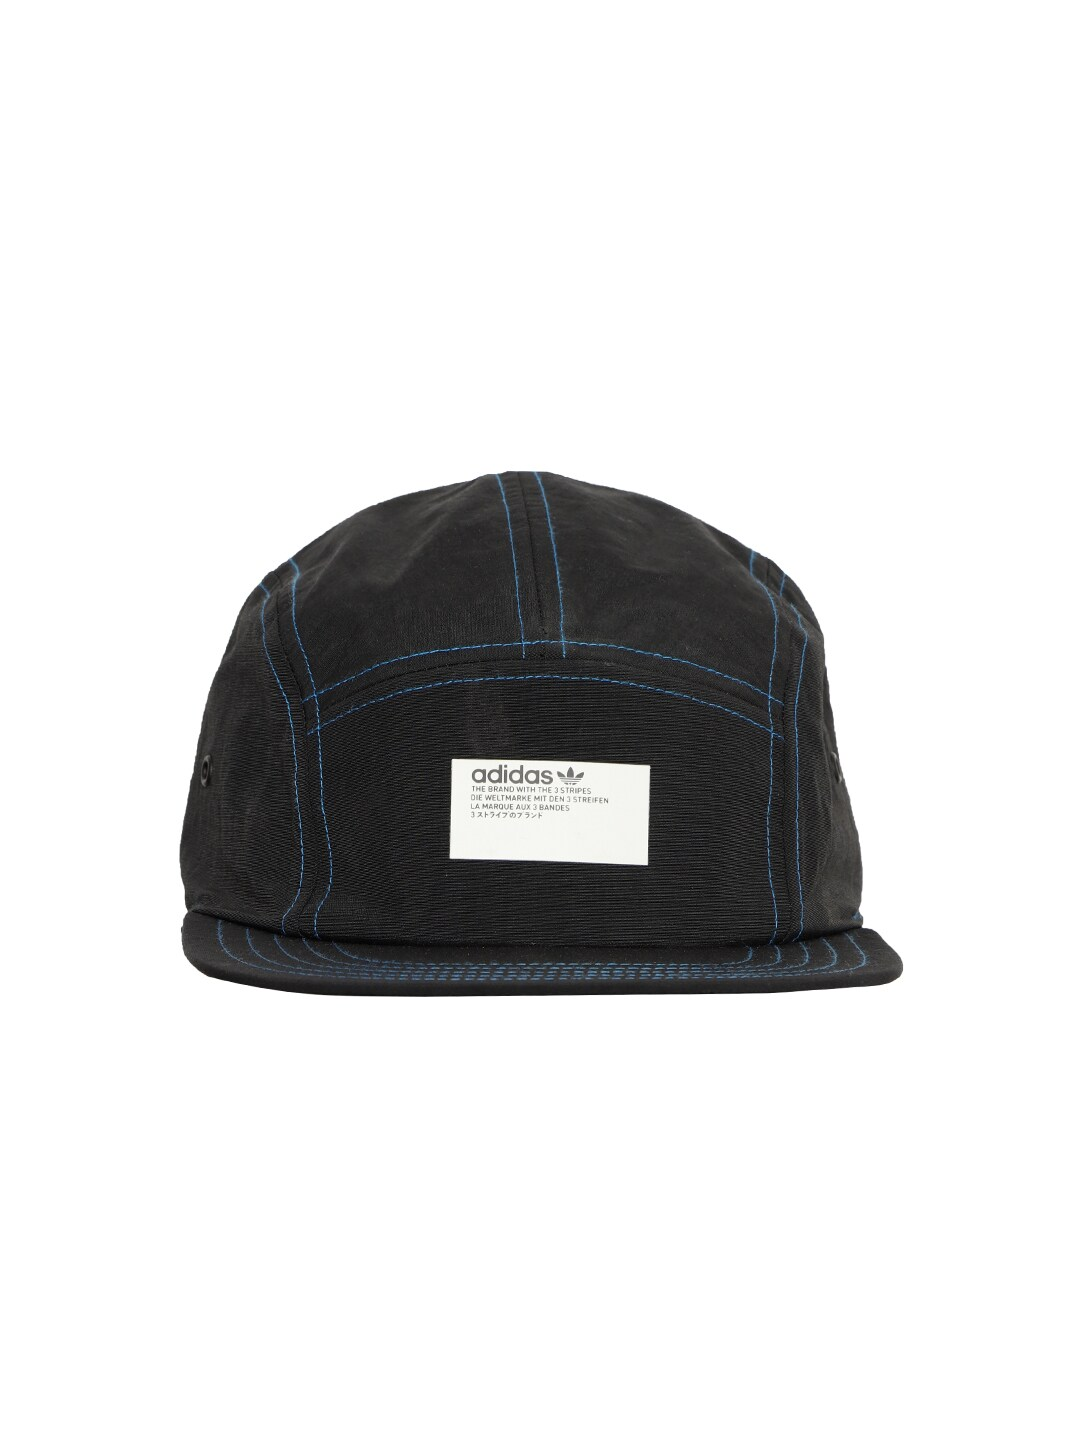 c5b30596094dc Adidas Cap - Buy Adidas Caps for Women   Girls Online